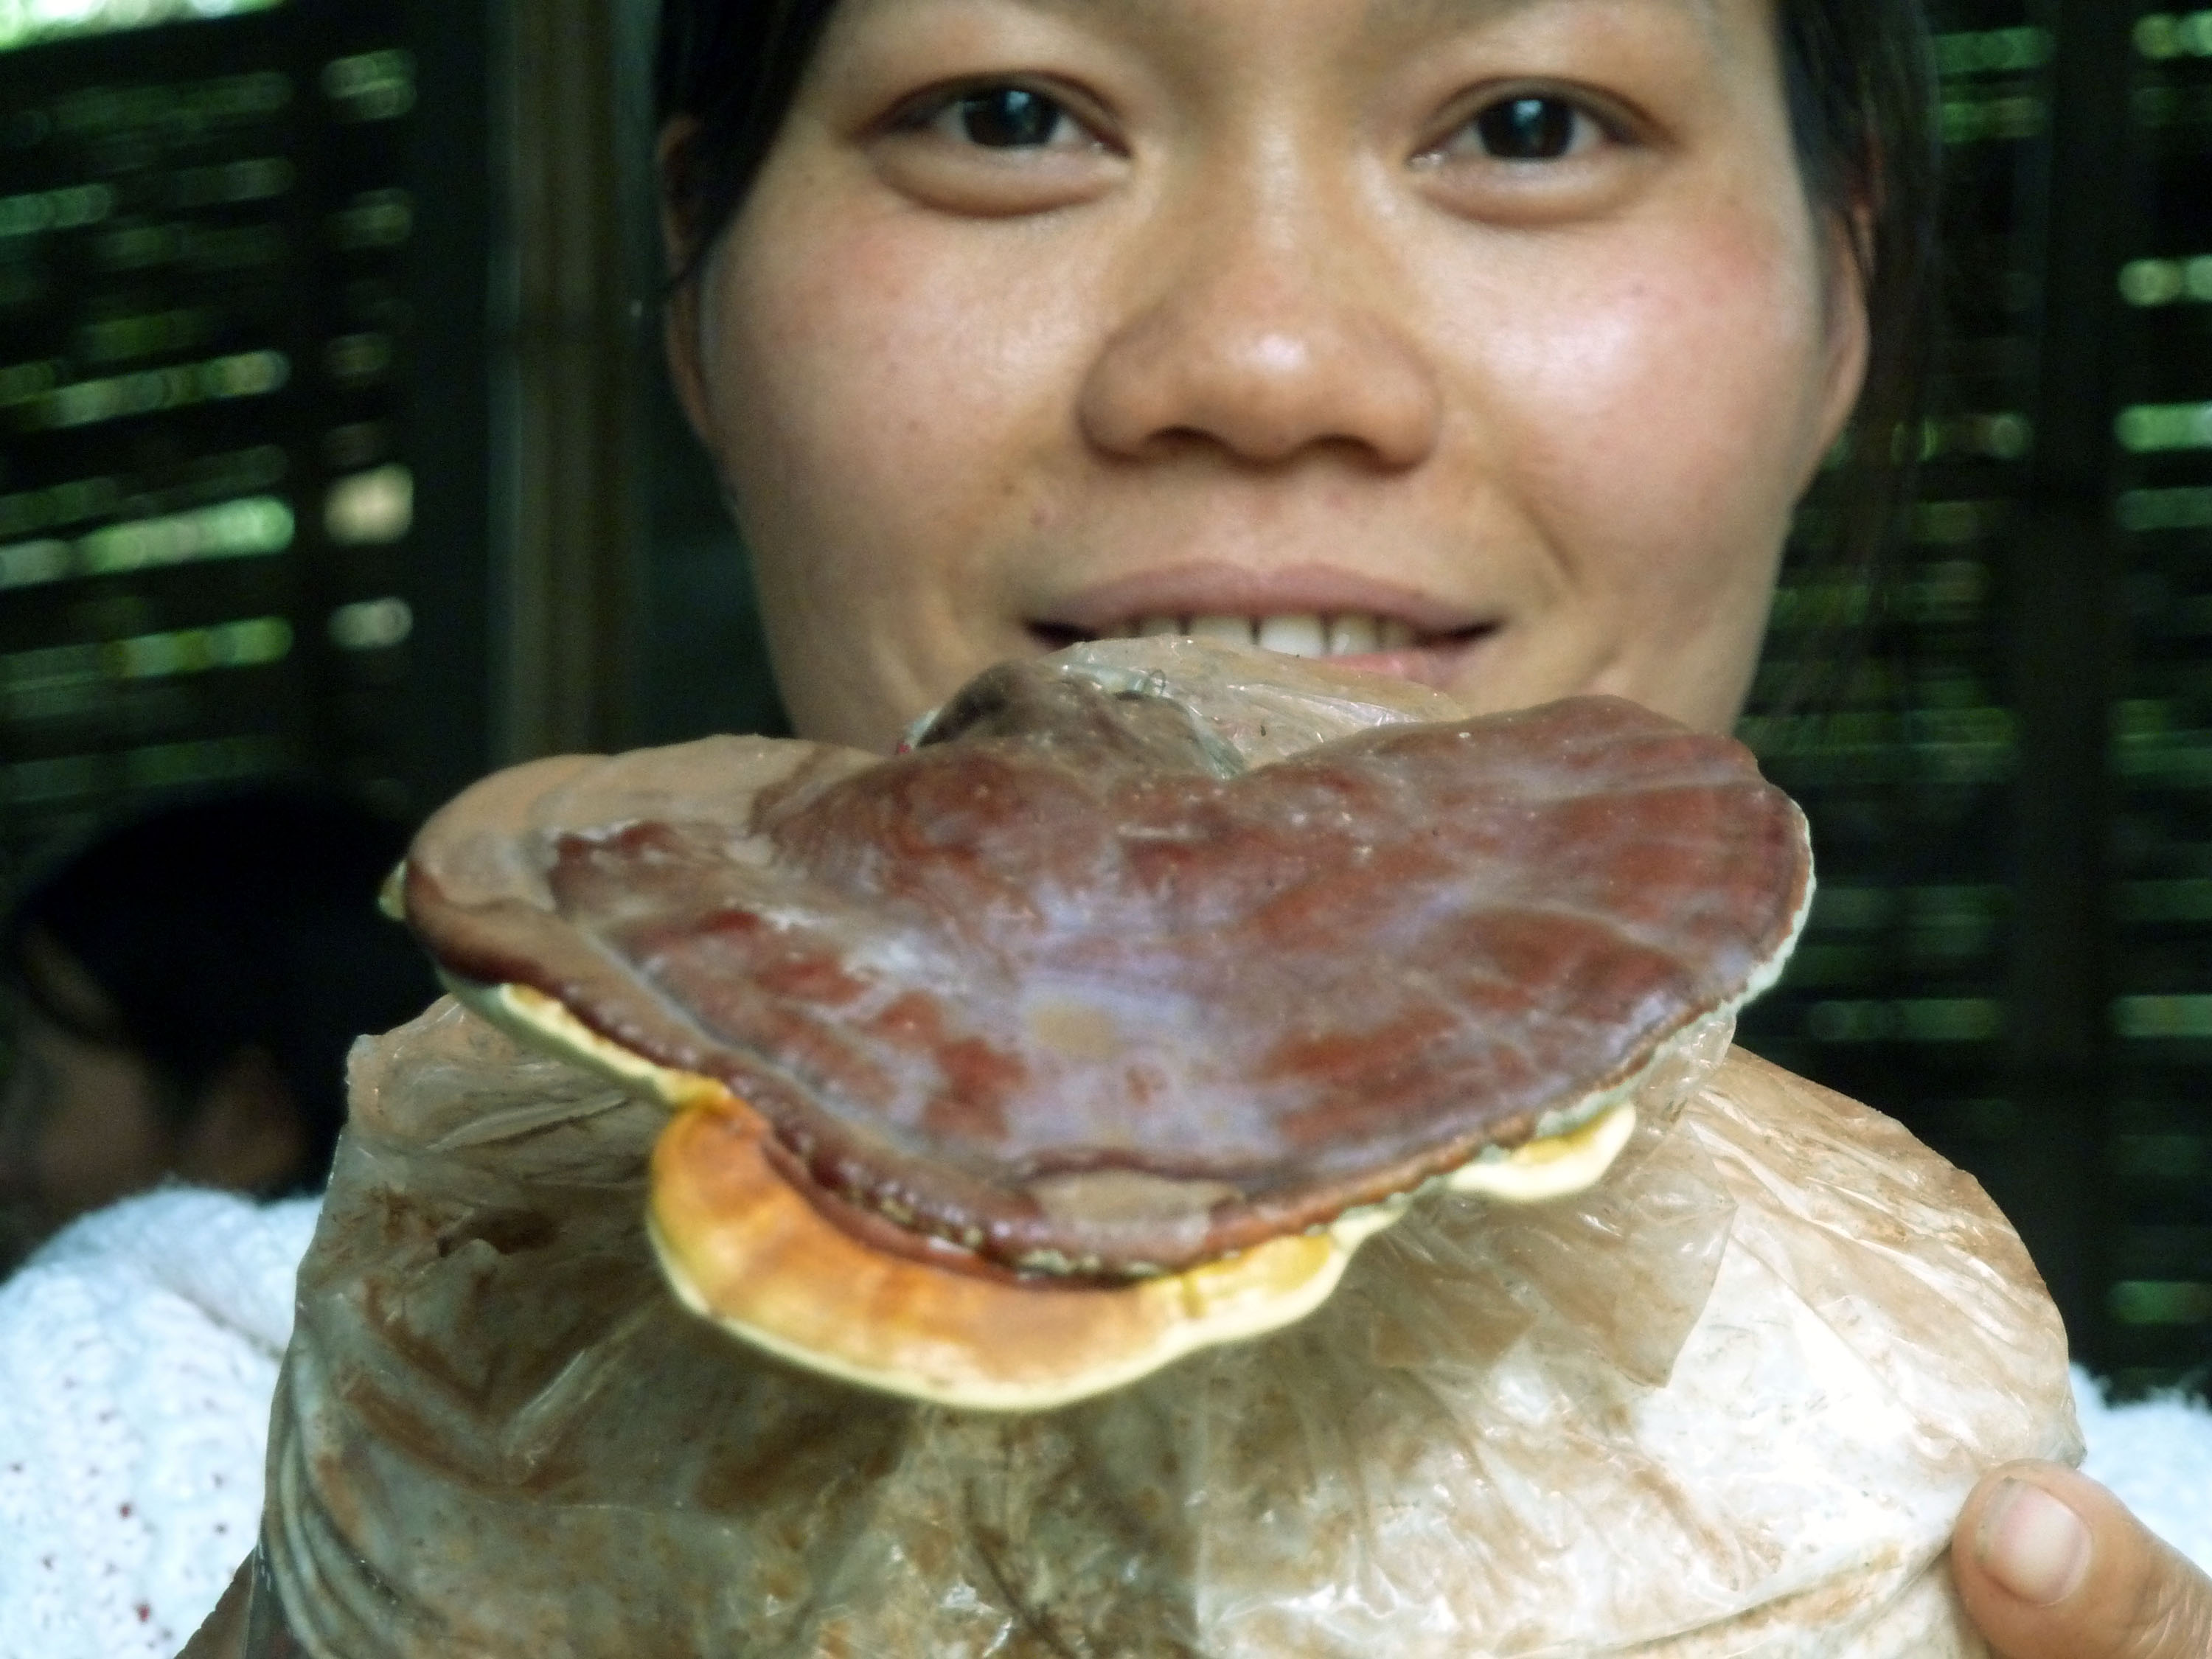 Taiwanese researchers find obesity-reducing properties in fungus